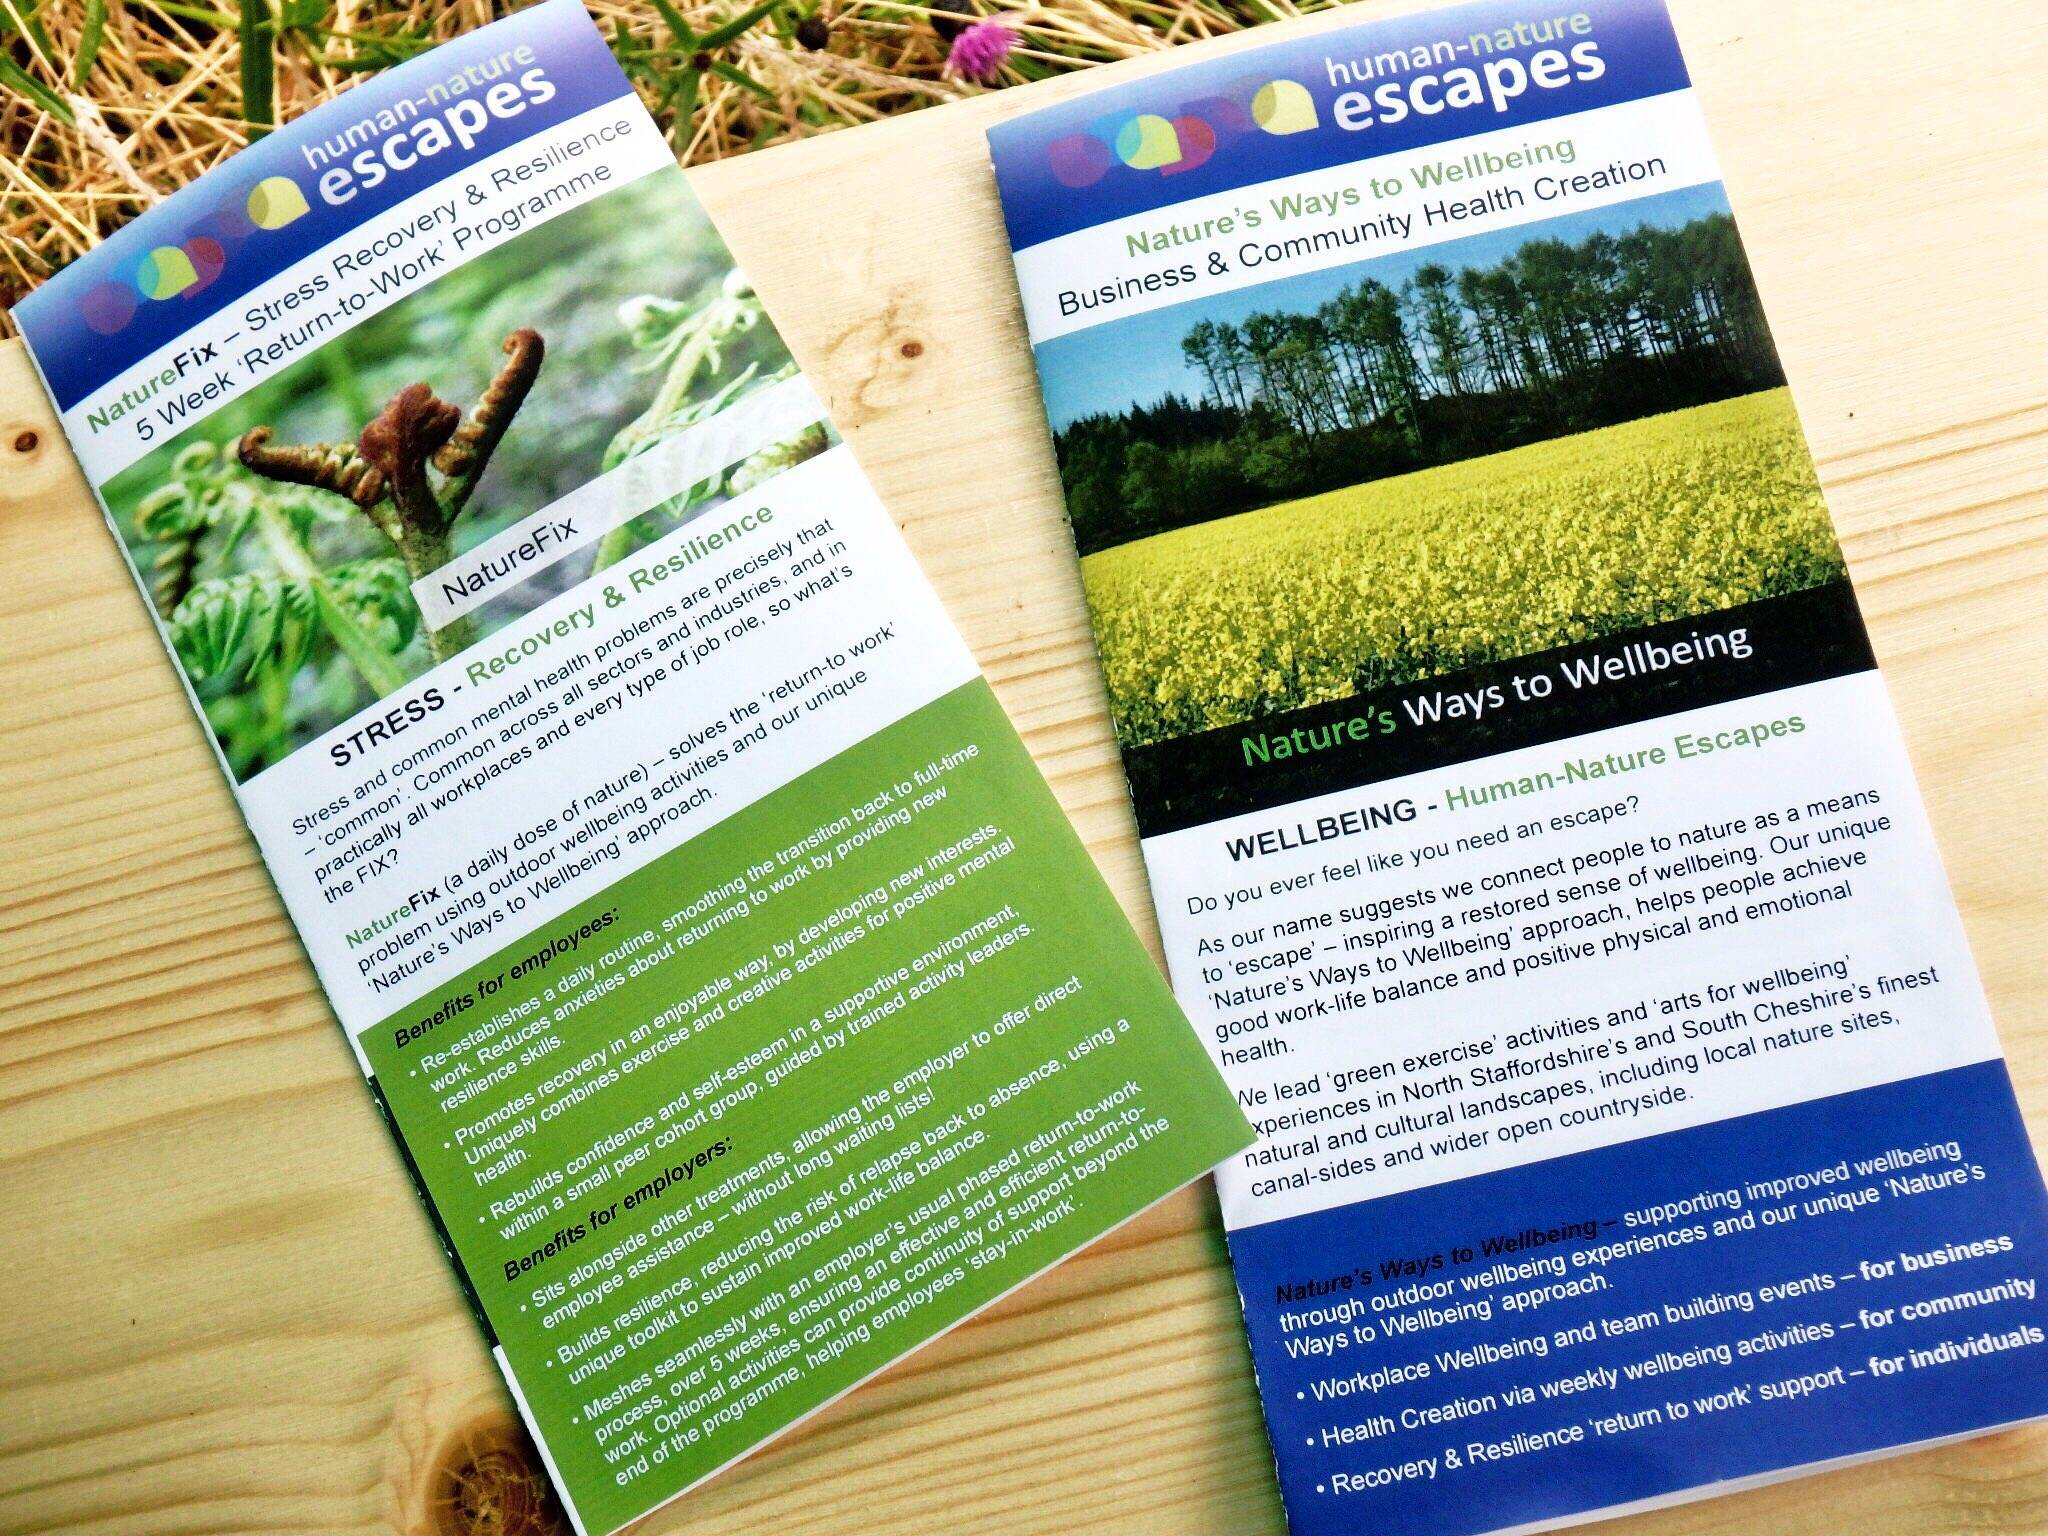 Human-Nature Escapes CIC - Leaflets